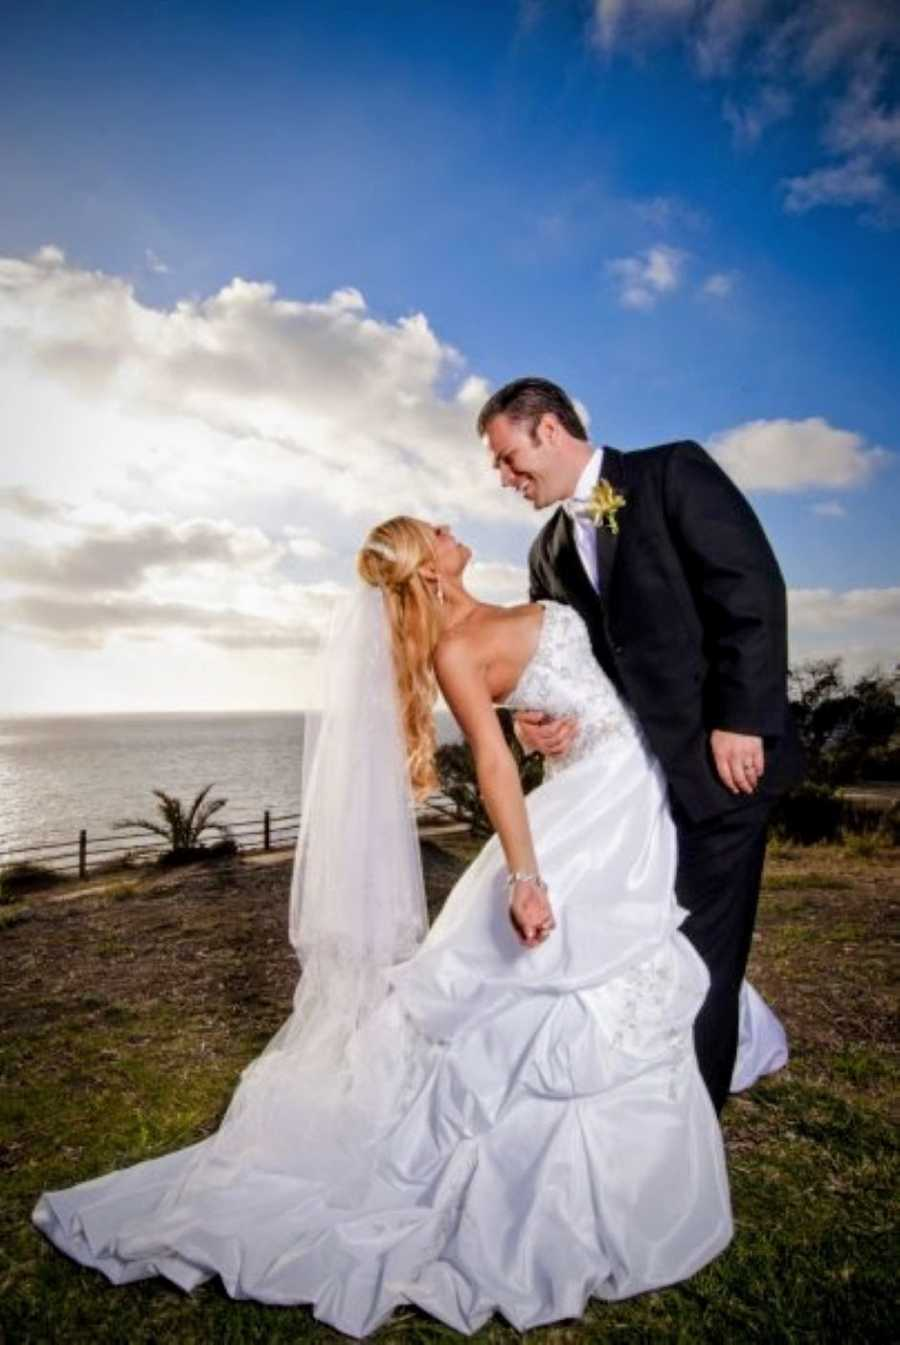 Newlywed couple take beautiful photo together overlooking a cliff at the Point Vicente Lighthouse in California